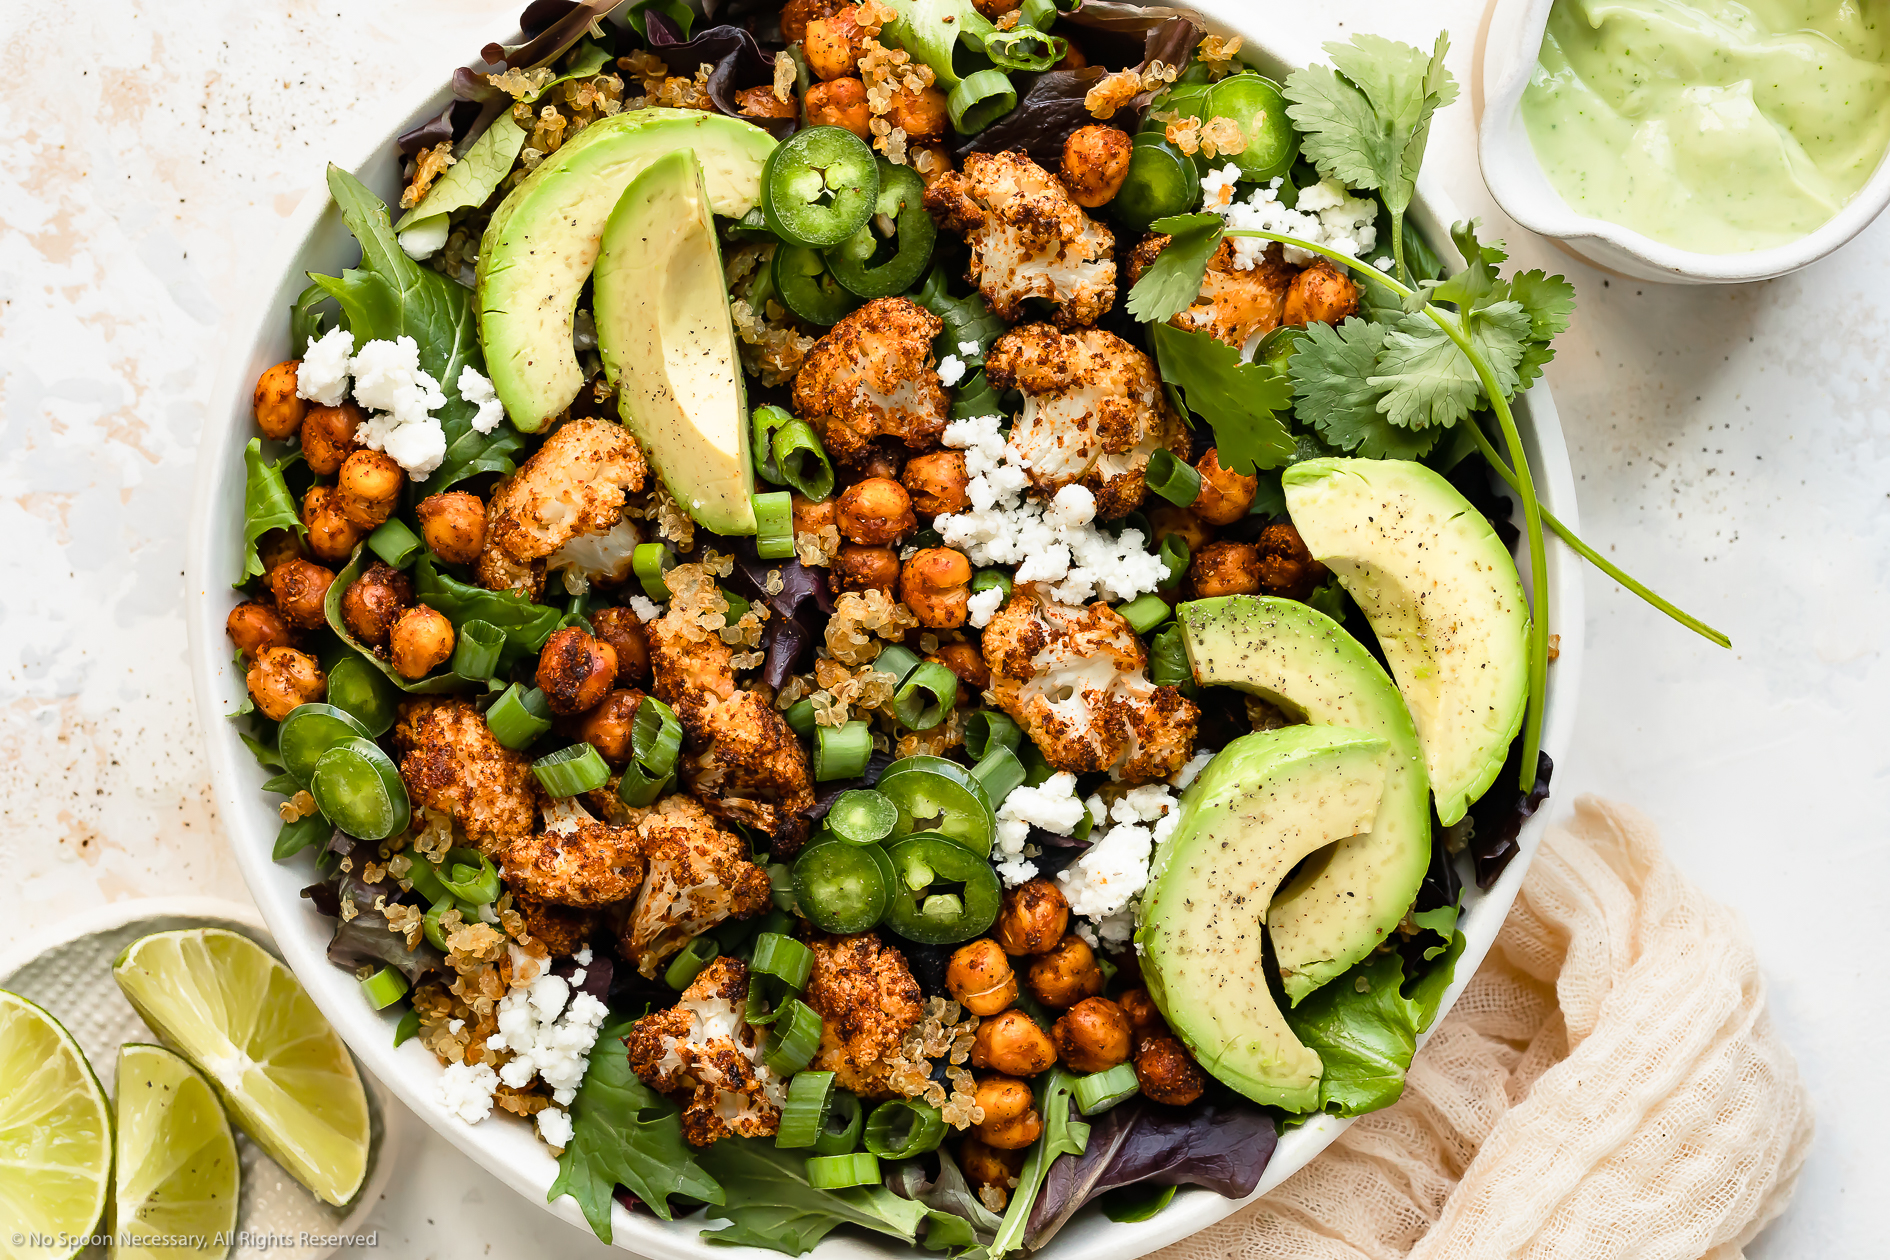 Overhead, landscape photo of Roasted Cauliflower Salad with chickpeas, crispy quinoa and avocado in a large white serving bowl with a ramekin of fresh lime wedges and a jar of avocado dressing next to the bowl.